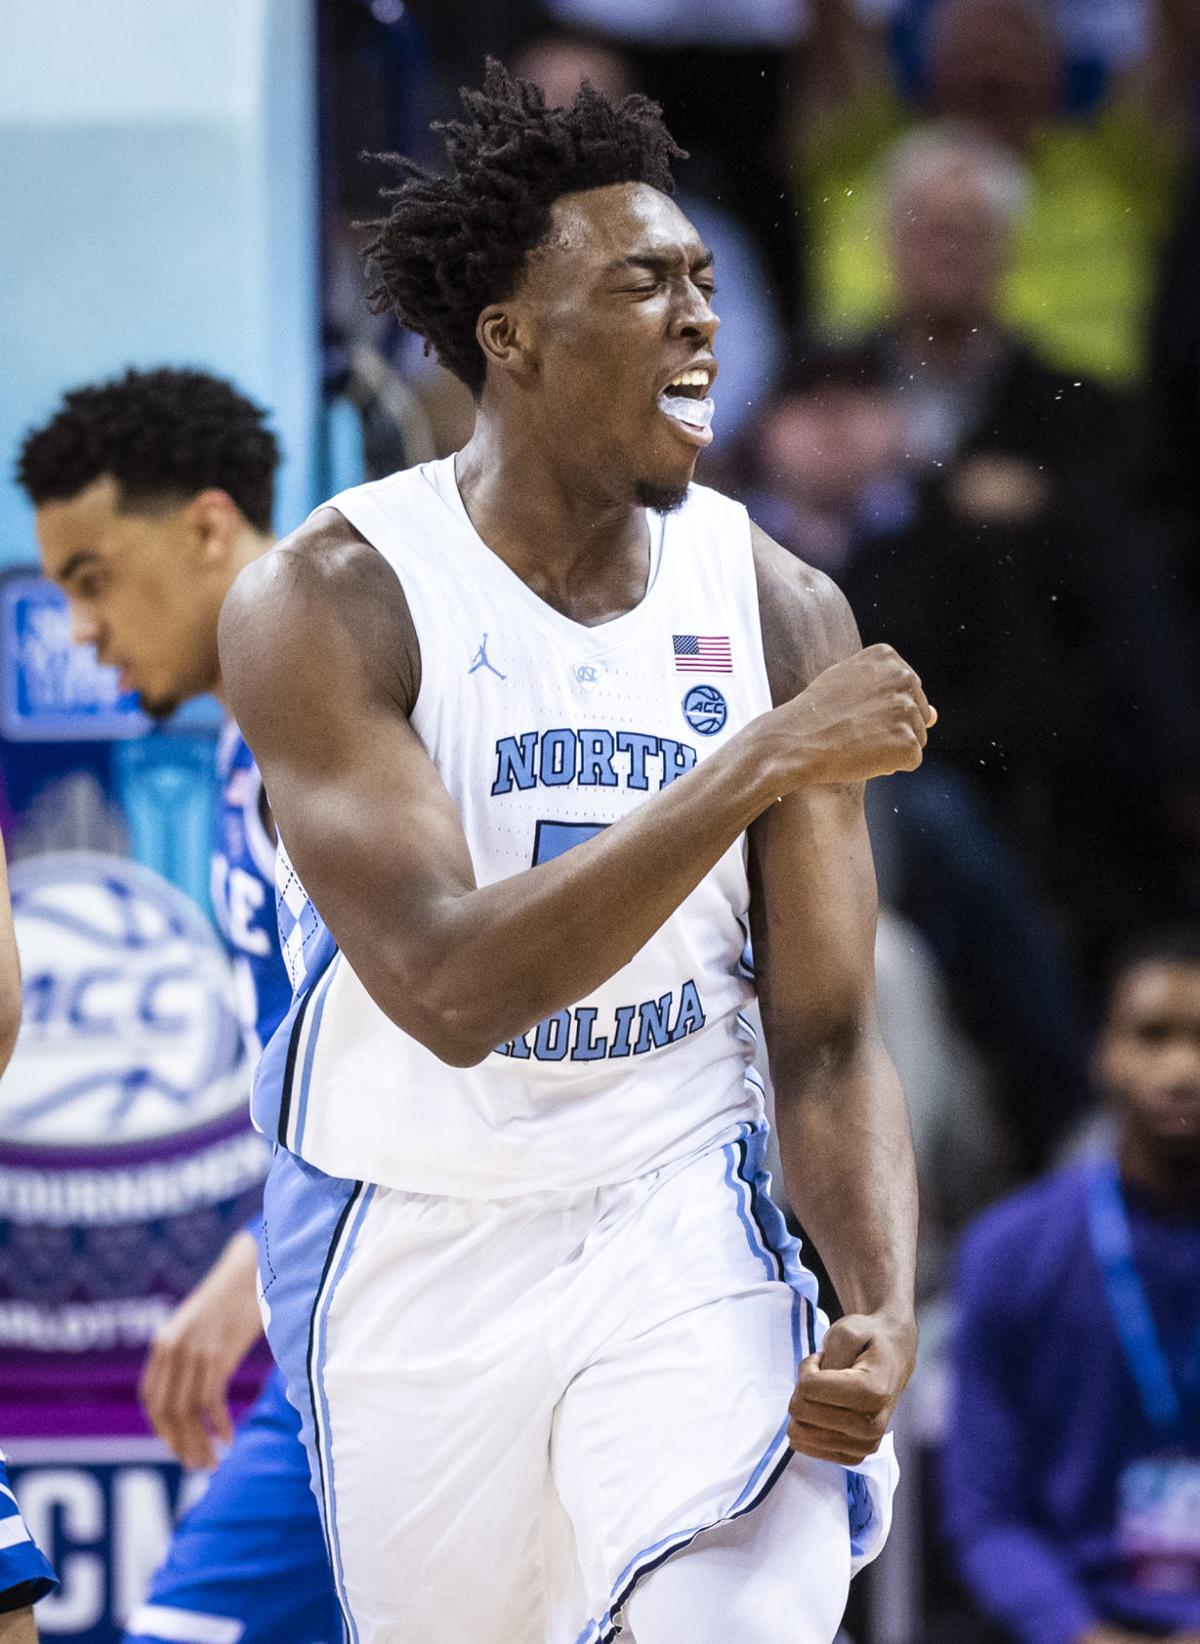 77d23d0837b Williamson leads Blue Devils over Tar Heels in vintage state showdown |  ACCXtra | greensboro.com